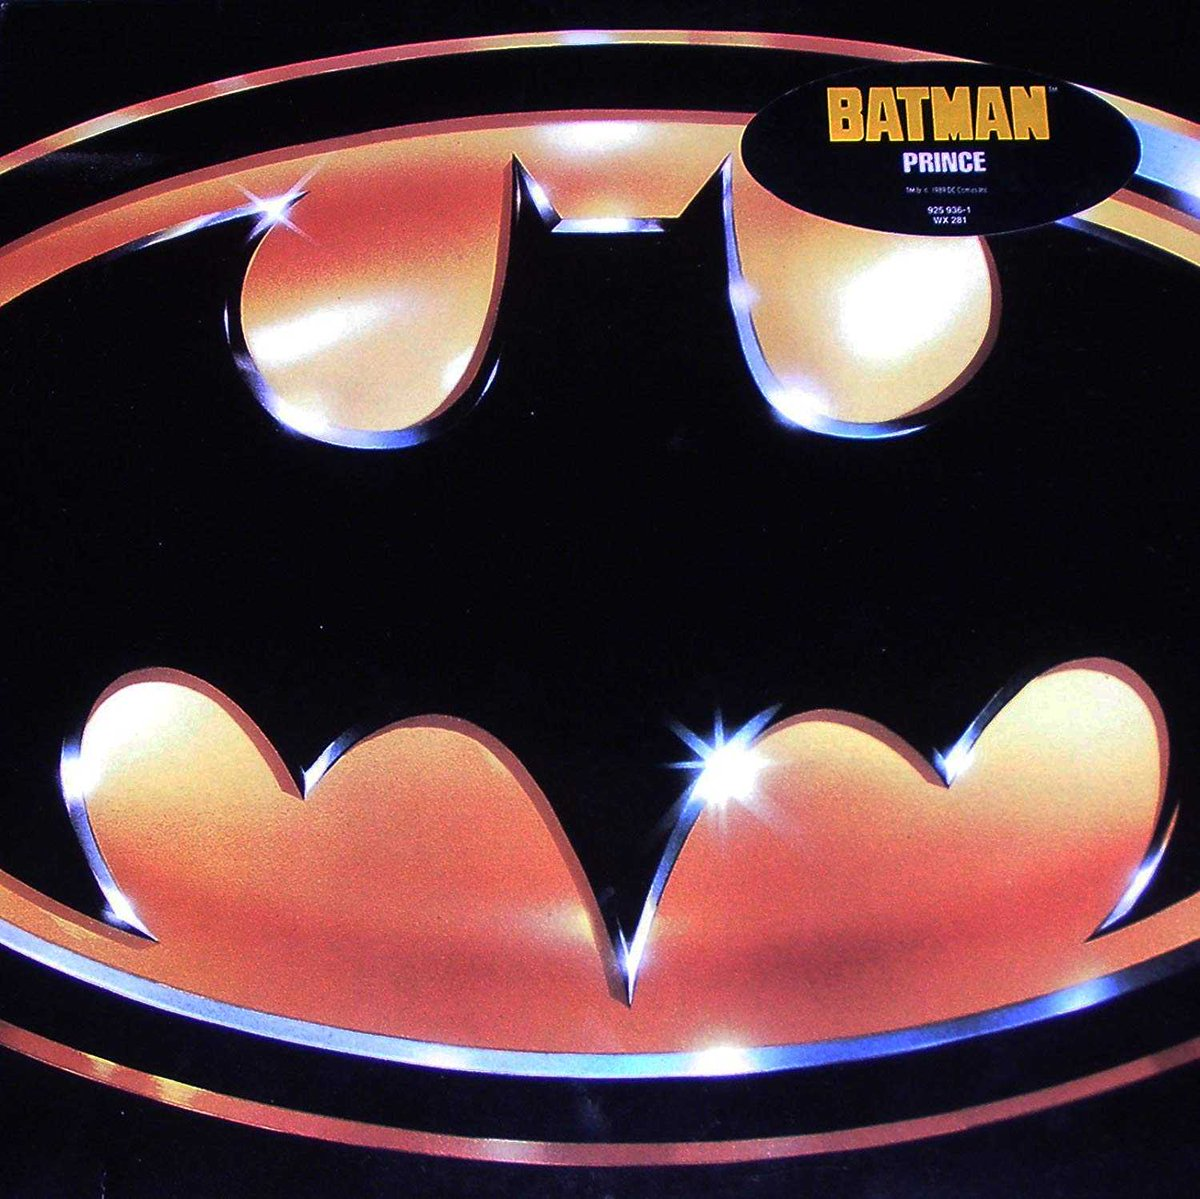 "The ""Batman (Soundtrack)"" by Prince was the #1 album on the Billboard charts today in 1989. It was the first of 6 weeks on top for the album. #80s #80smusic<br>http://pic.twitter.com/iL0LR5tUcU"